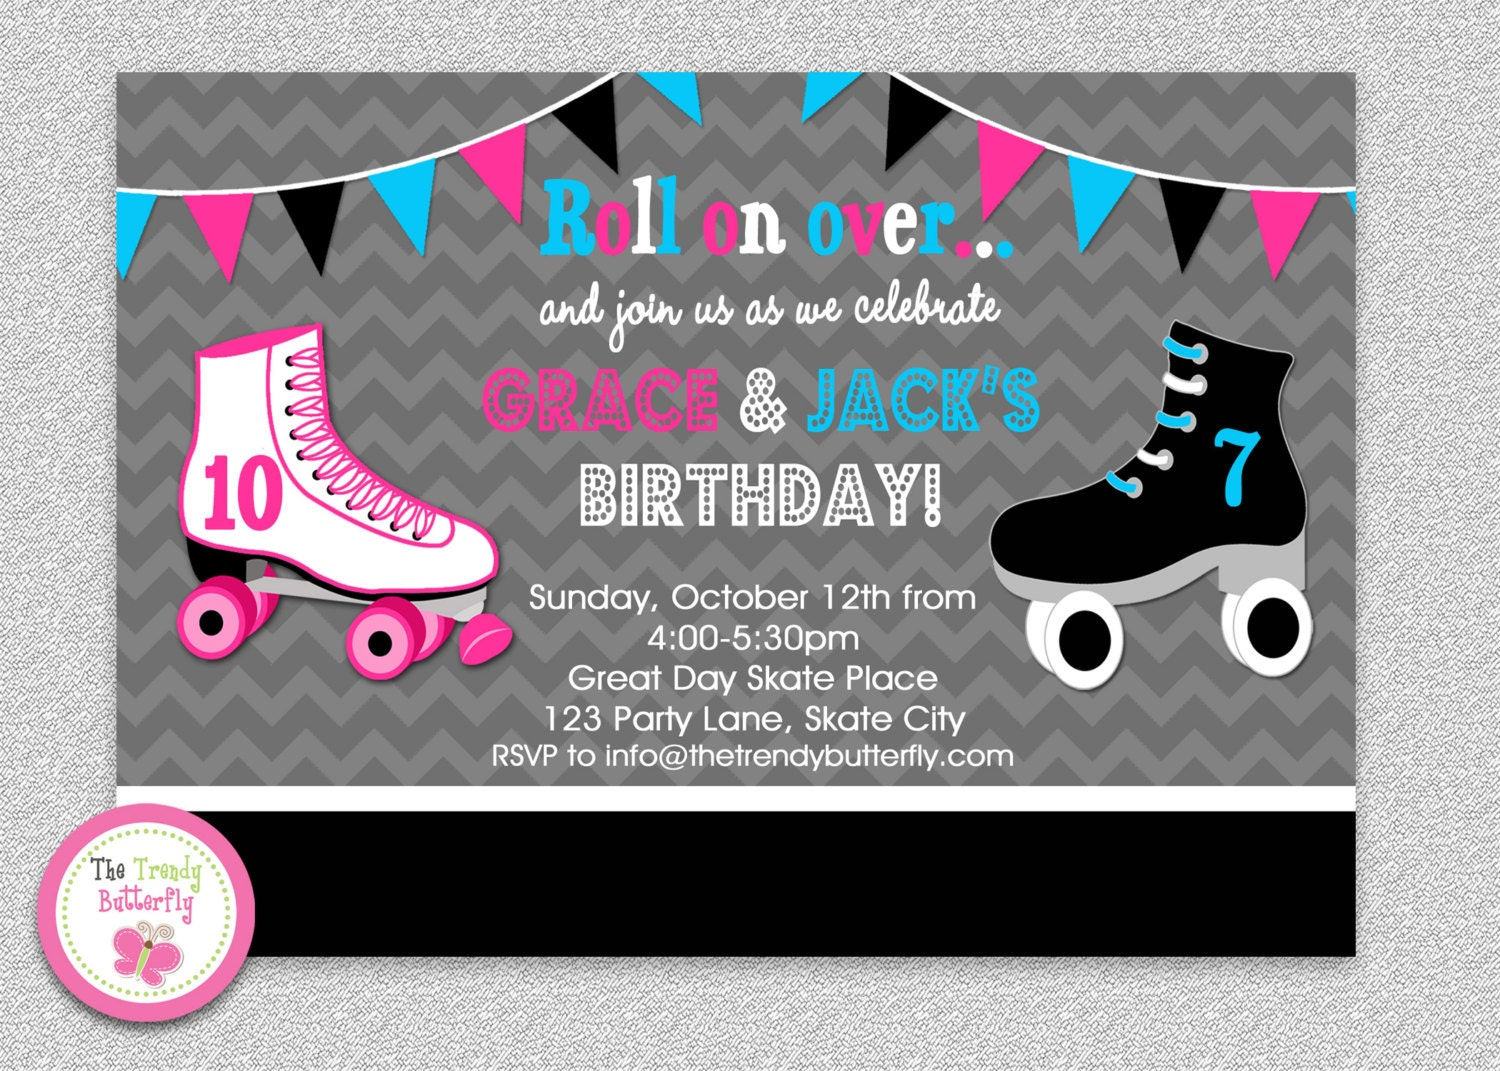 Siblings Roller Skating Birthday Invitation Boys Girls Roller